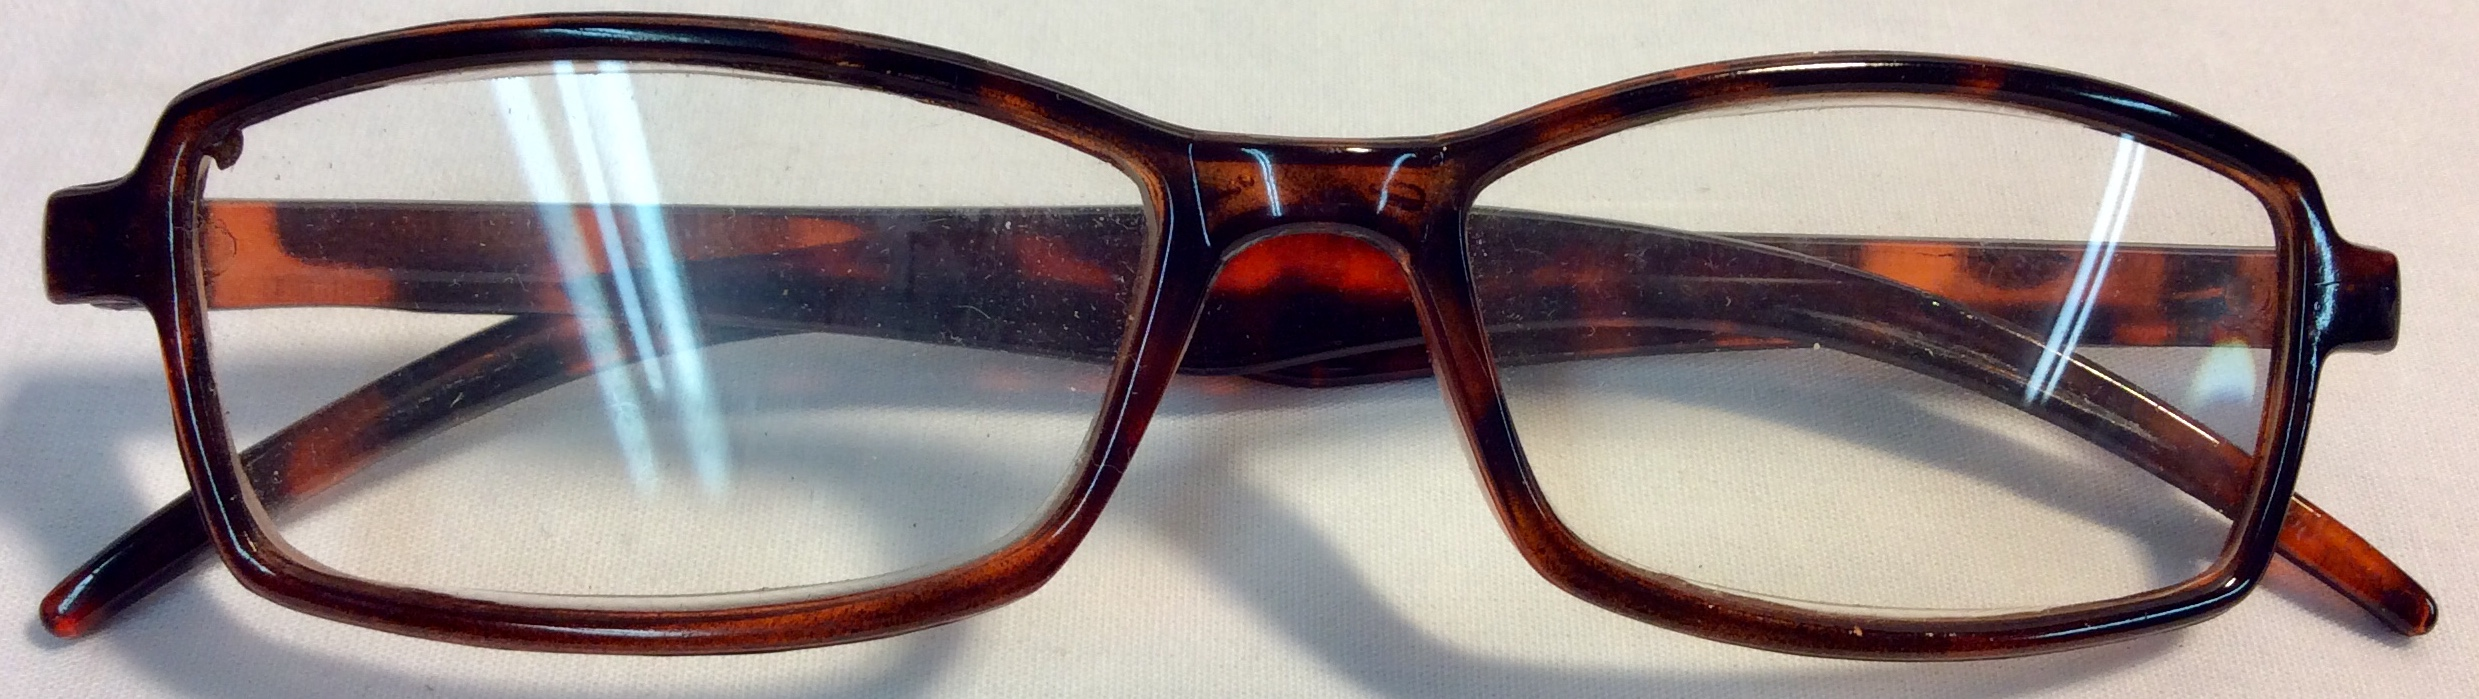 Small glasses with turtle frame